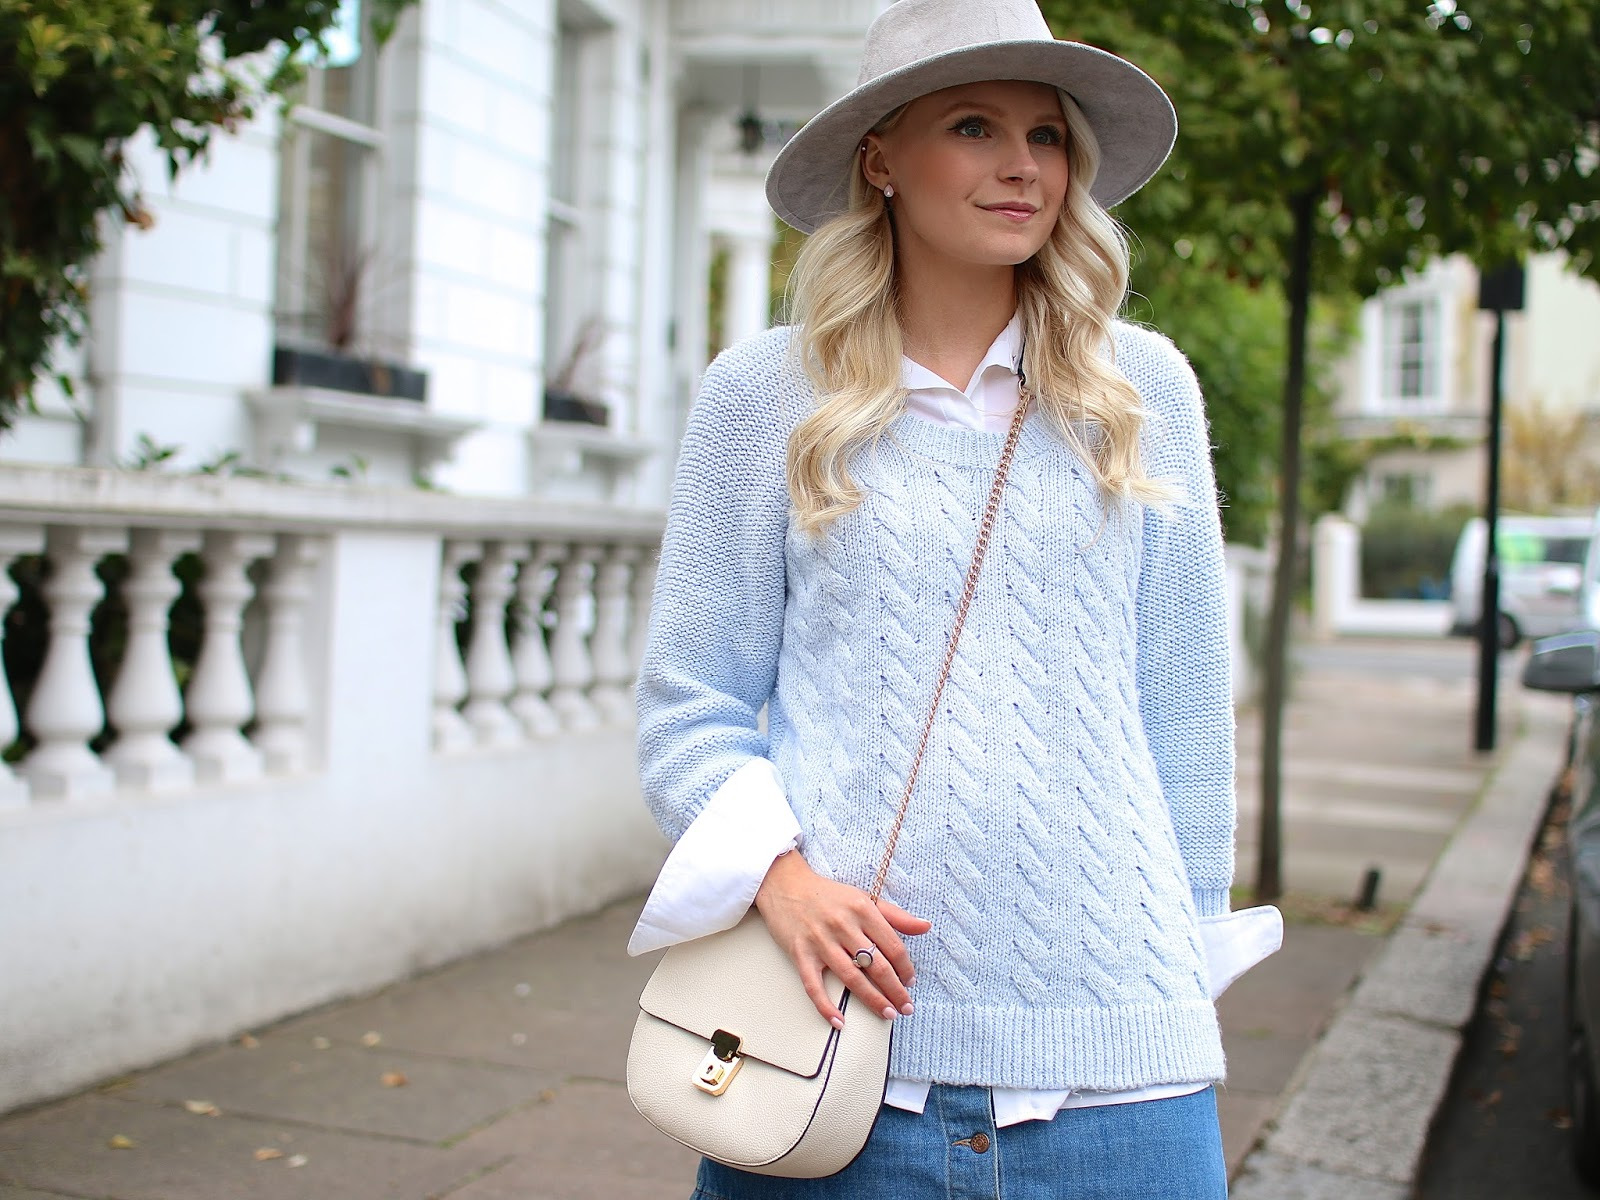 a blonde women wearing a cozy pale blue sweater in soho london